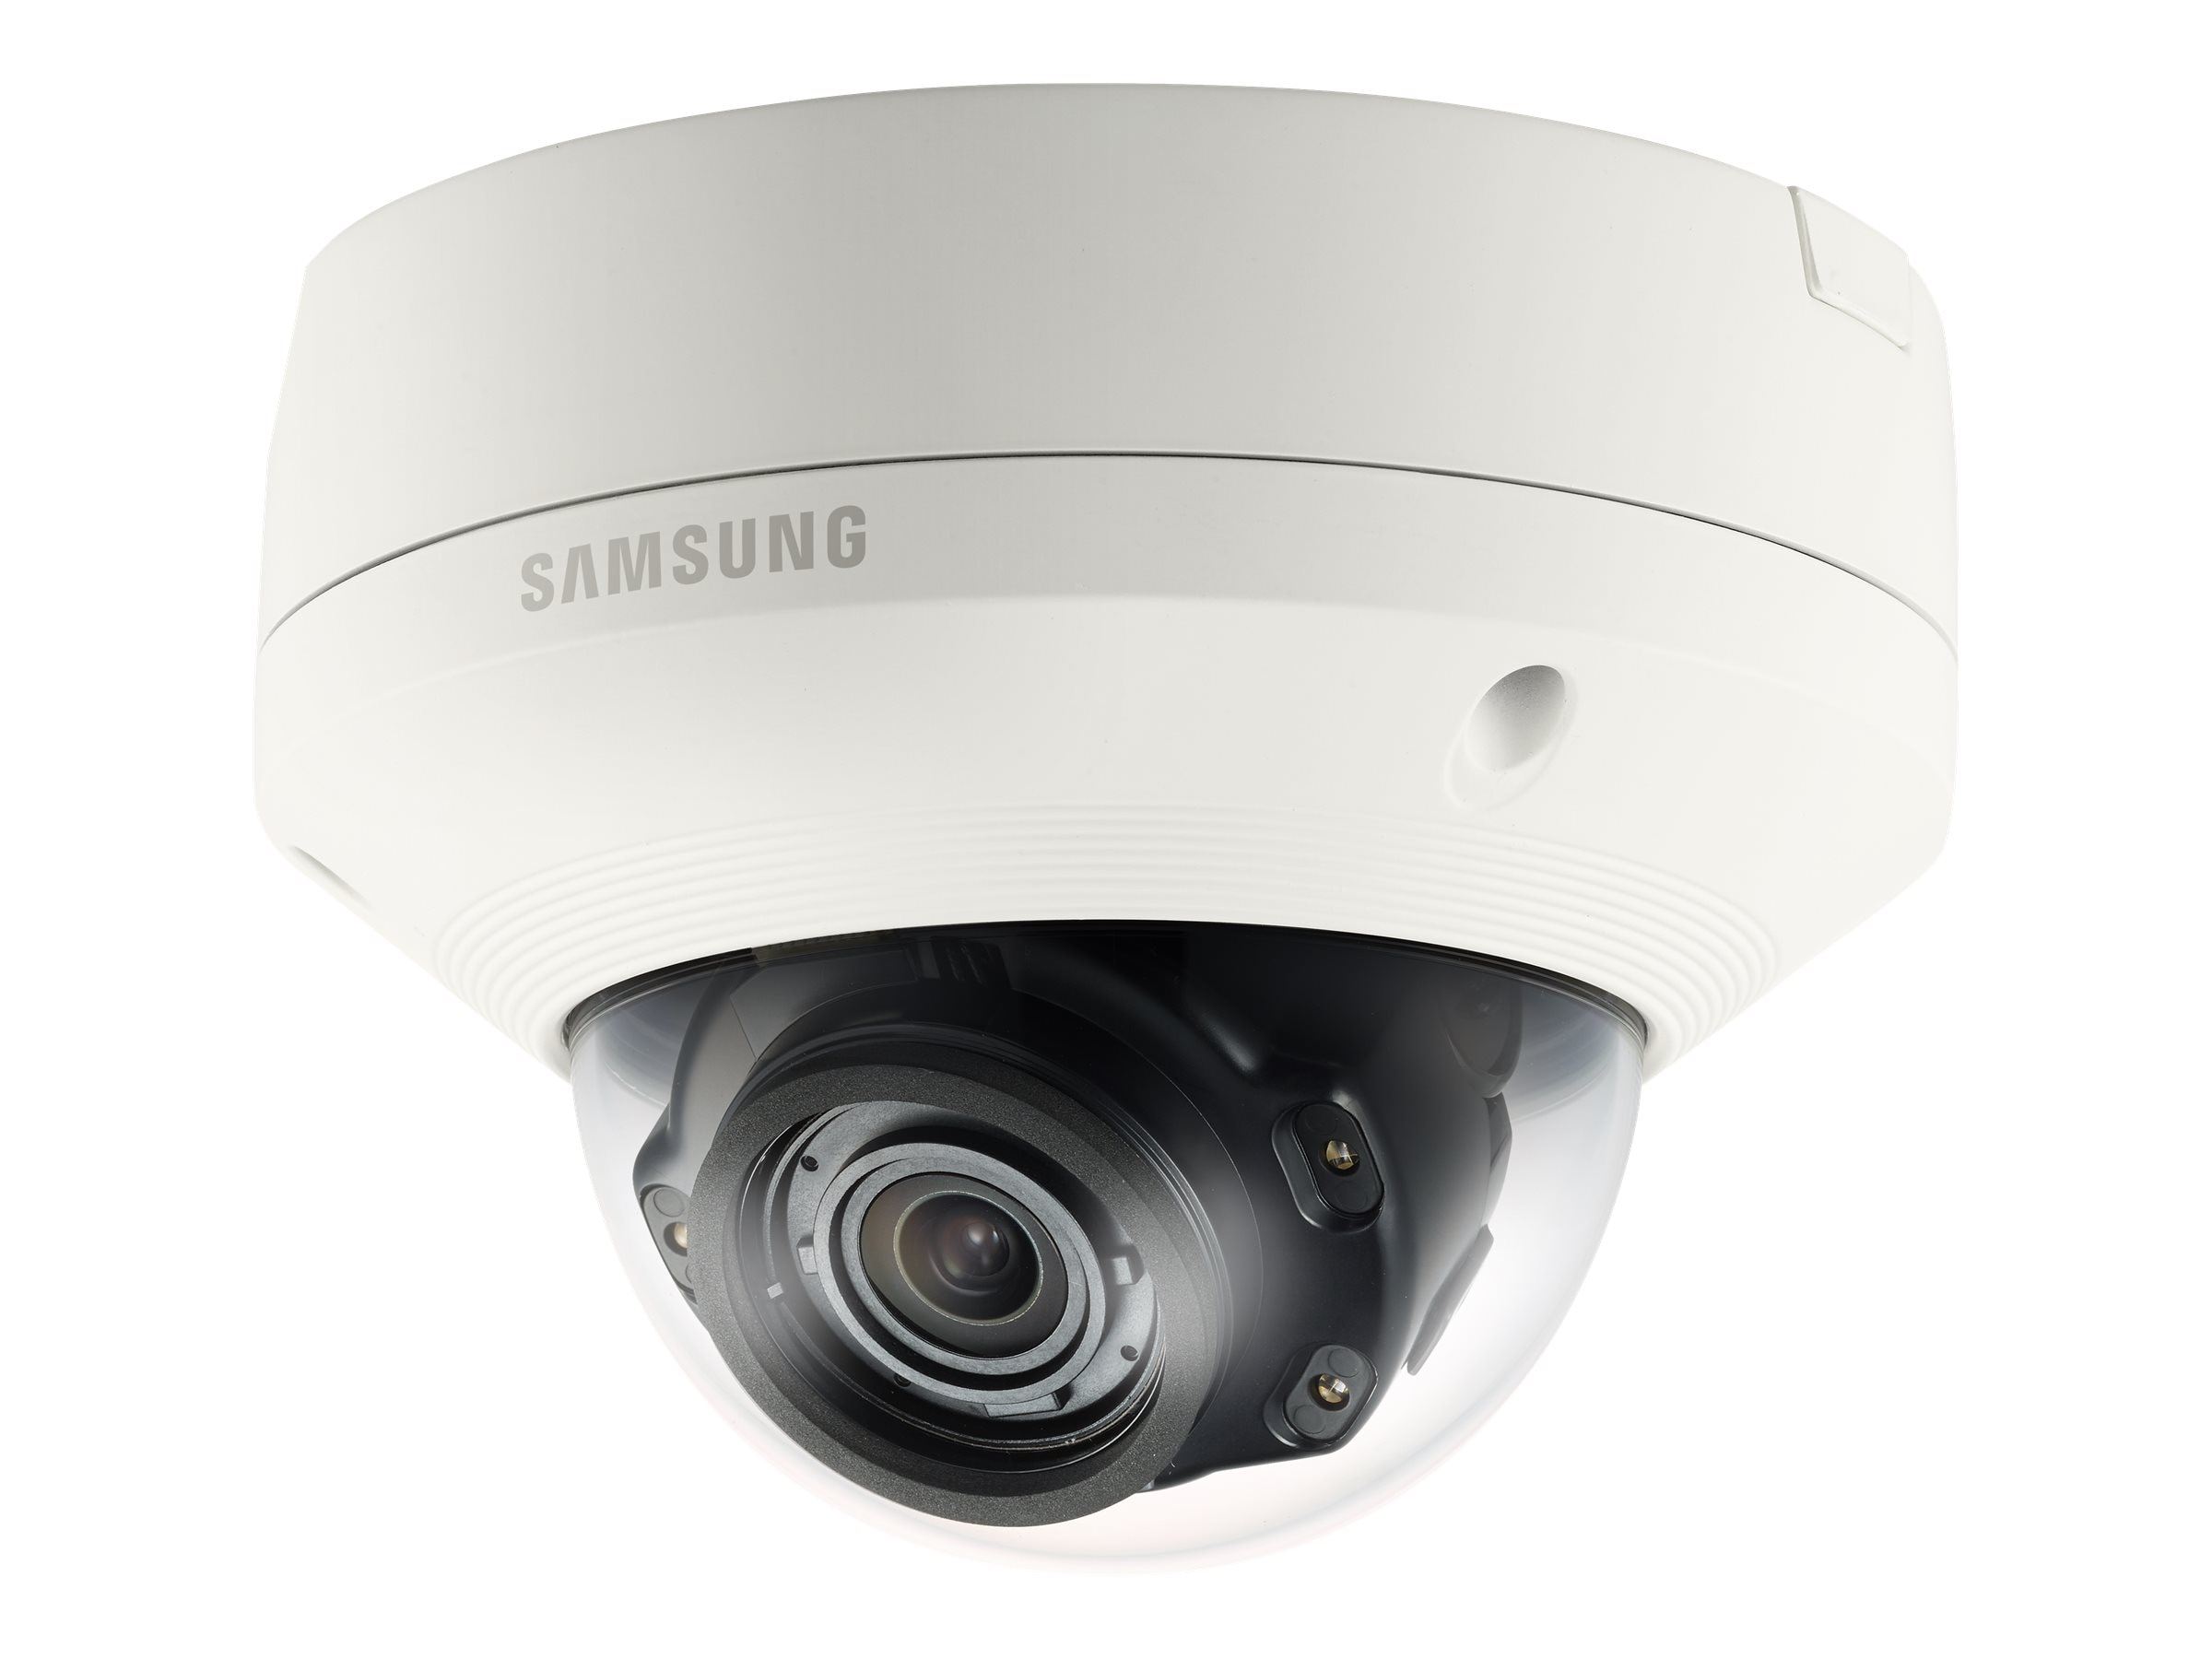 Samsung 5MP Vandal-Resistant Network IR Dome Camera, White